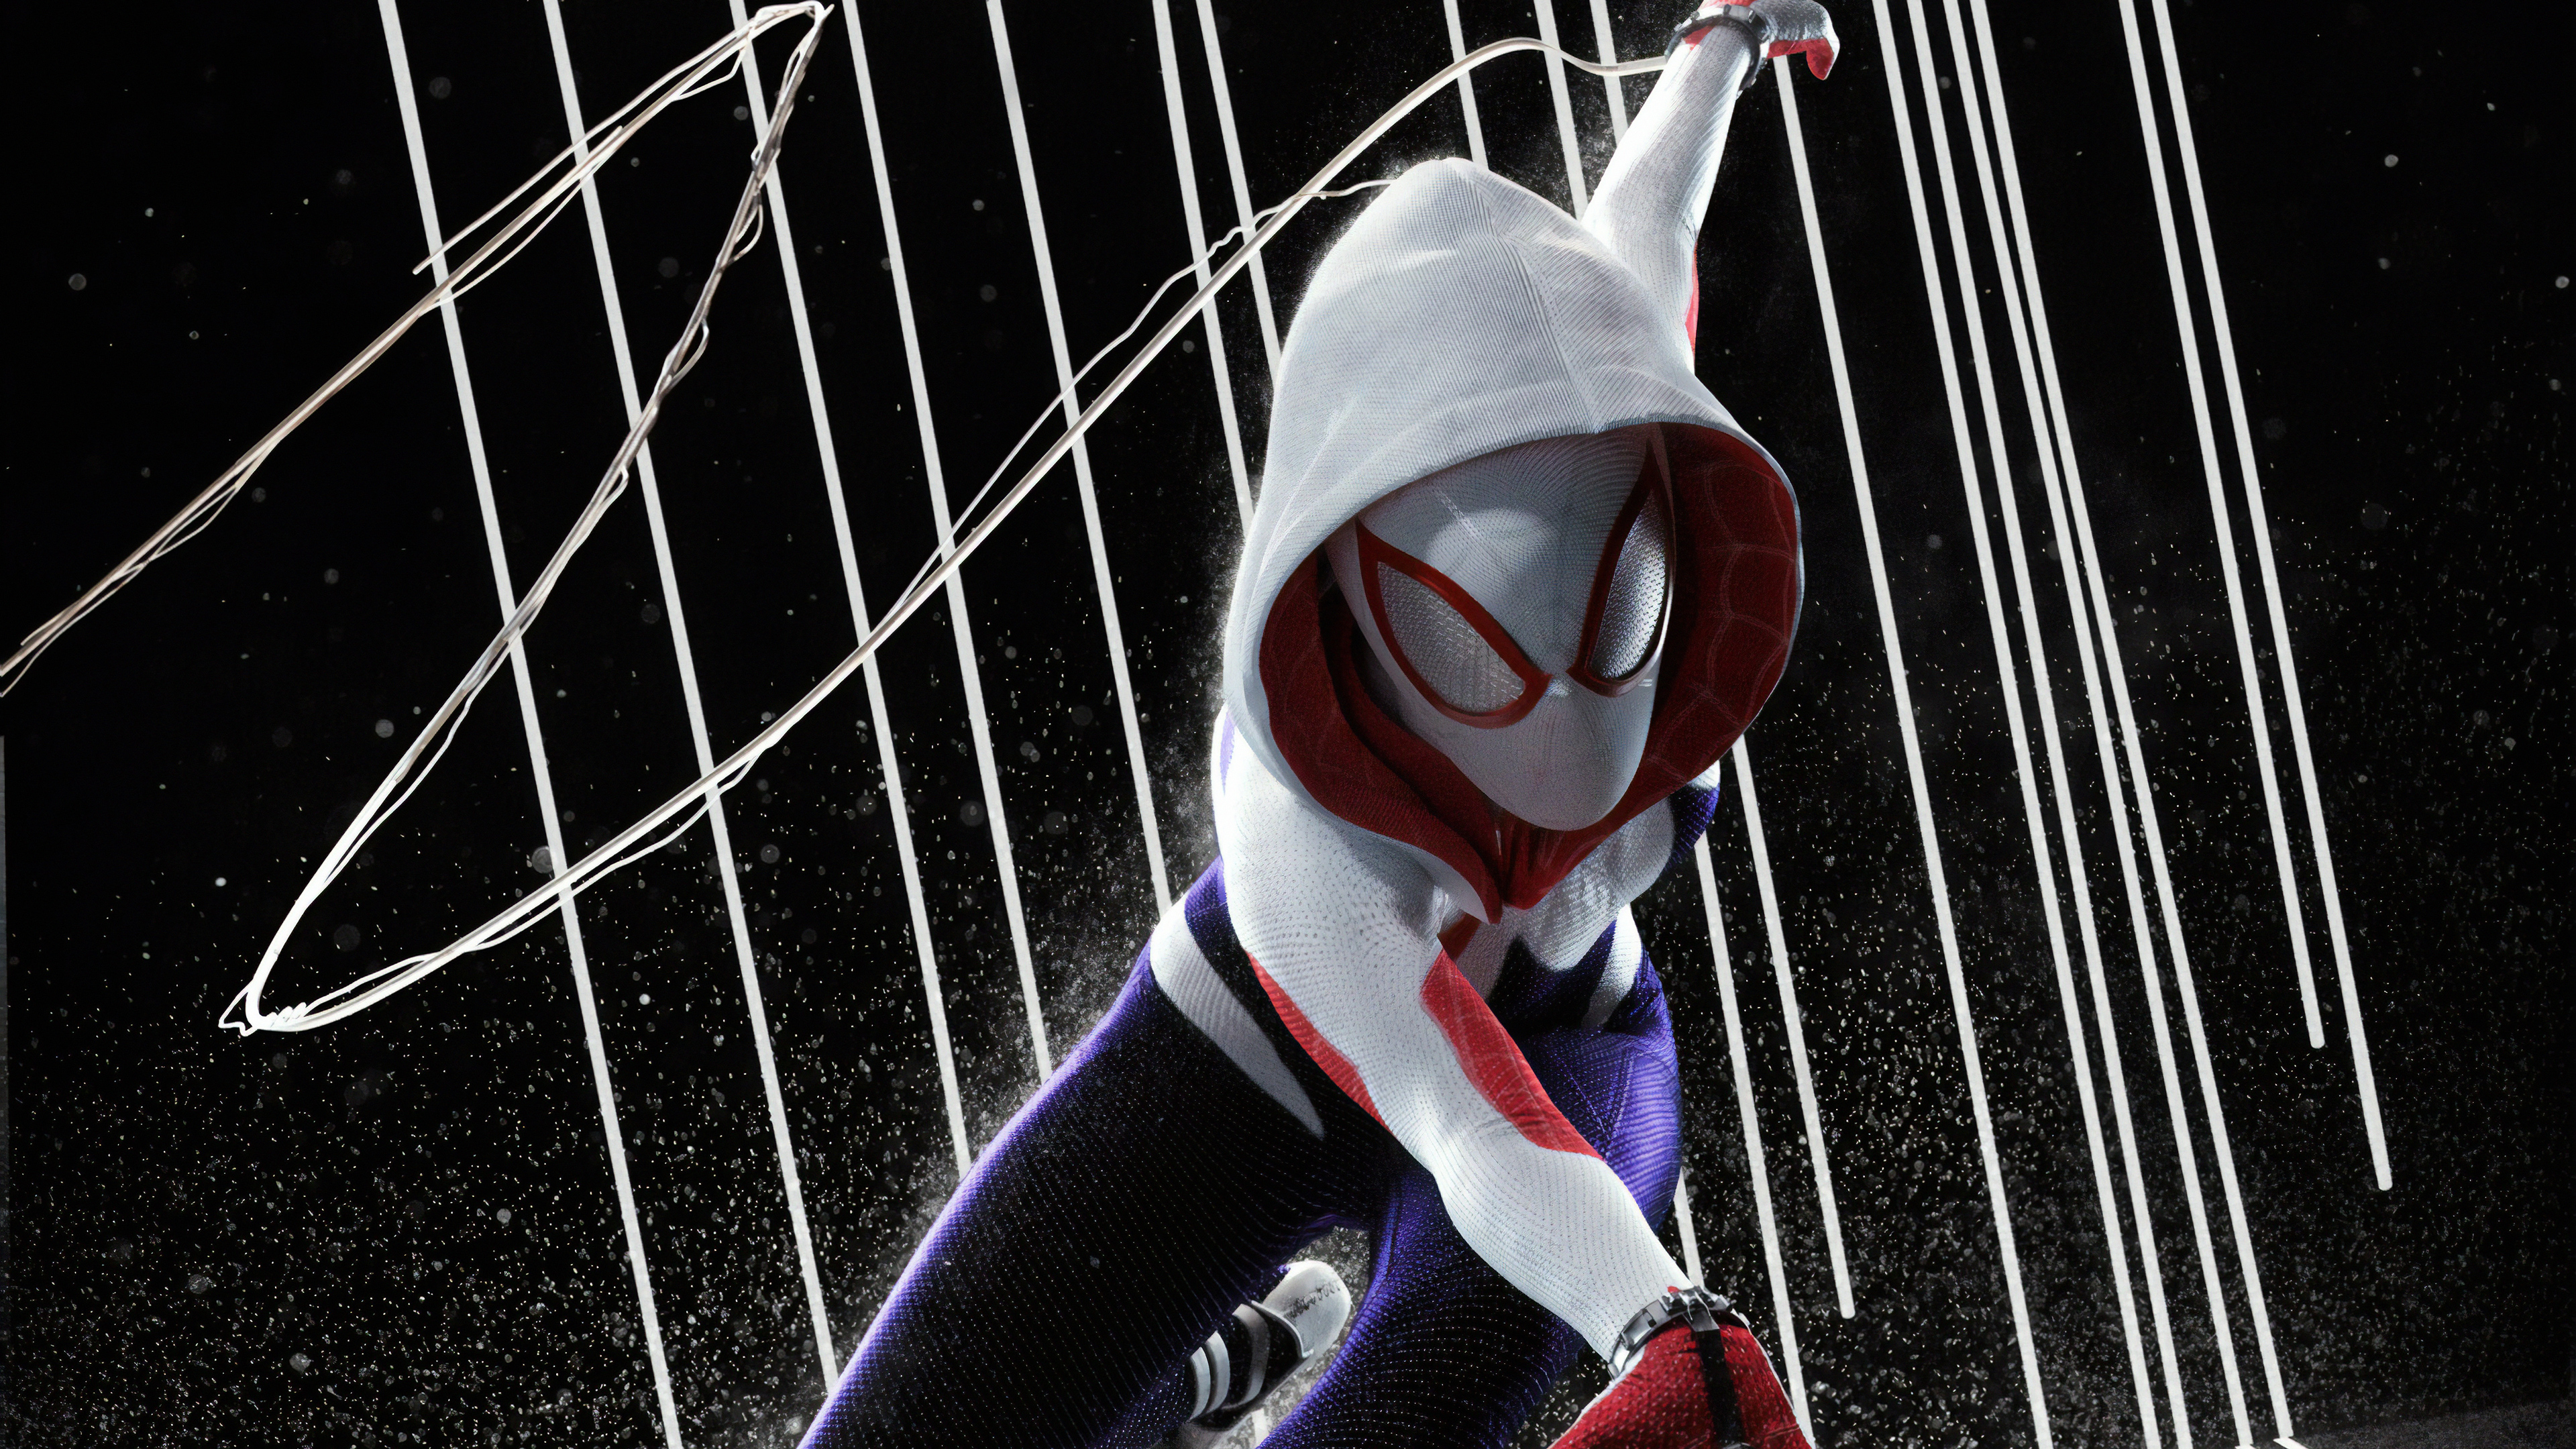 spider gwen 4k new 1562106012 - Spider Gwen 4k New - superheroes wallpapers, hd-wallpapers, gwen wallpapers, gwen stacy wallpapers, digital art wallpapers, artwork wallpapers, artstation wallpapers, artist wallpapers, 4k-wallpapers